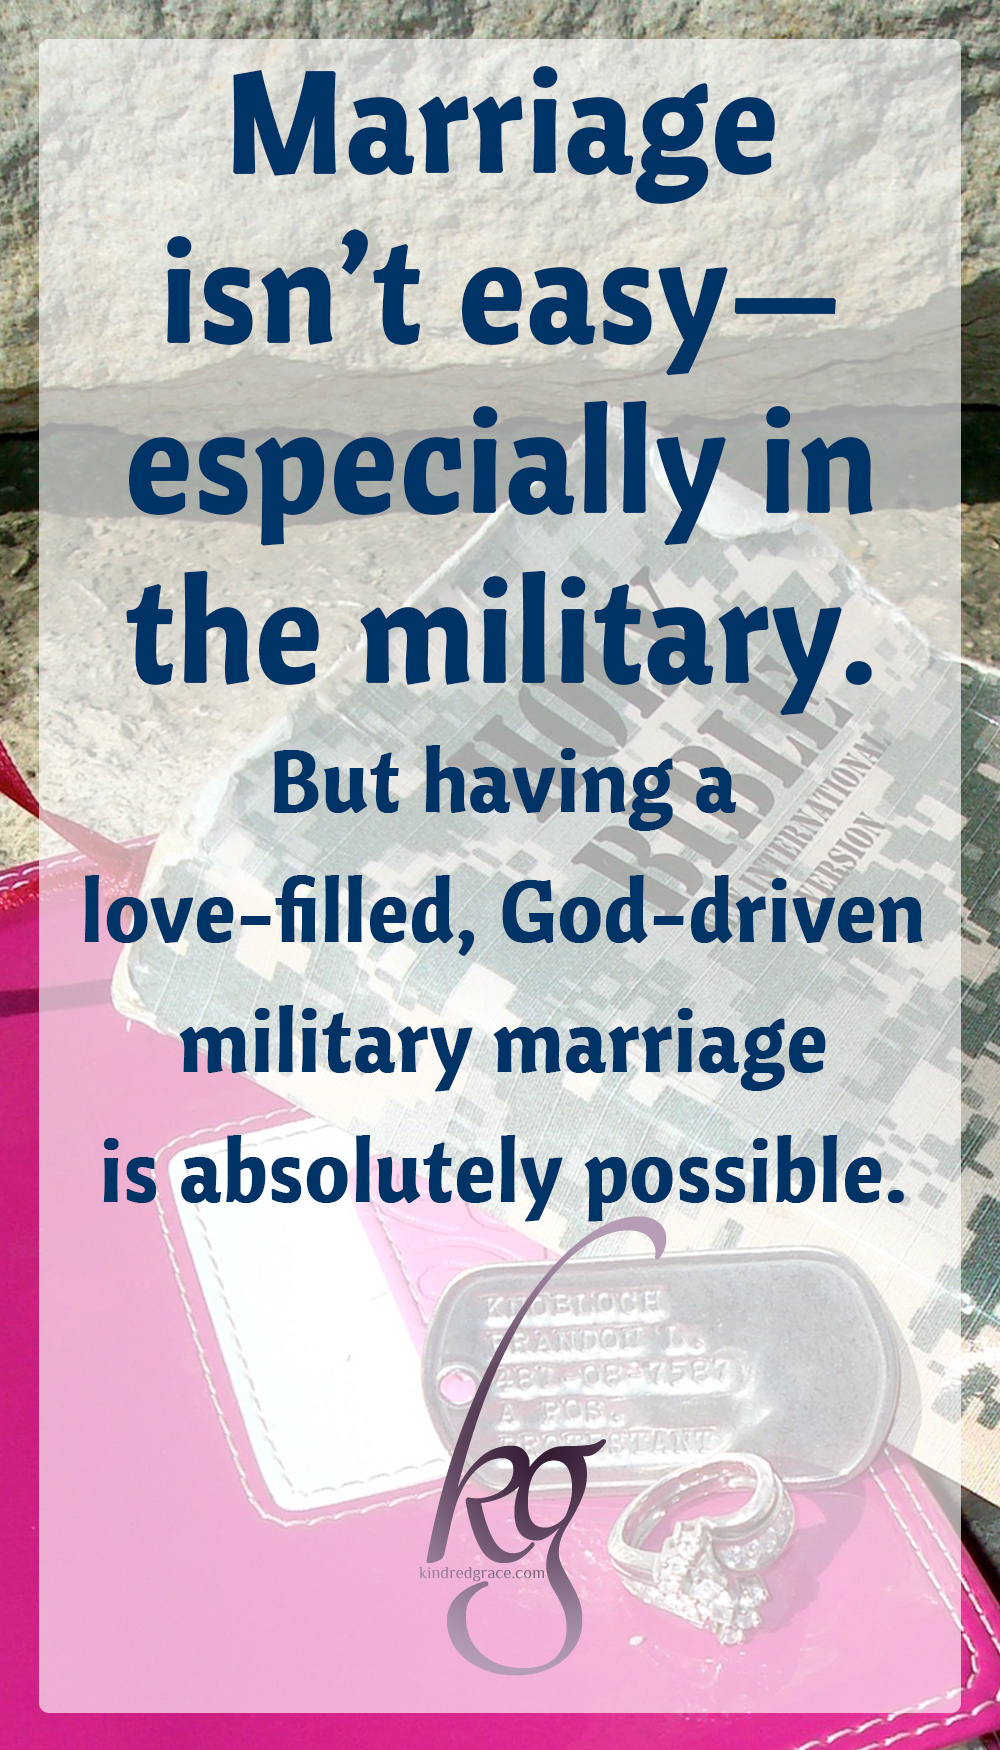 Just as Paul reminds us, marriage isn't easy—especially in the military. But having a love-filled, God-driven military marriage is absolutely possible. via @KindredGrace